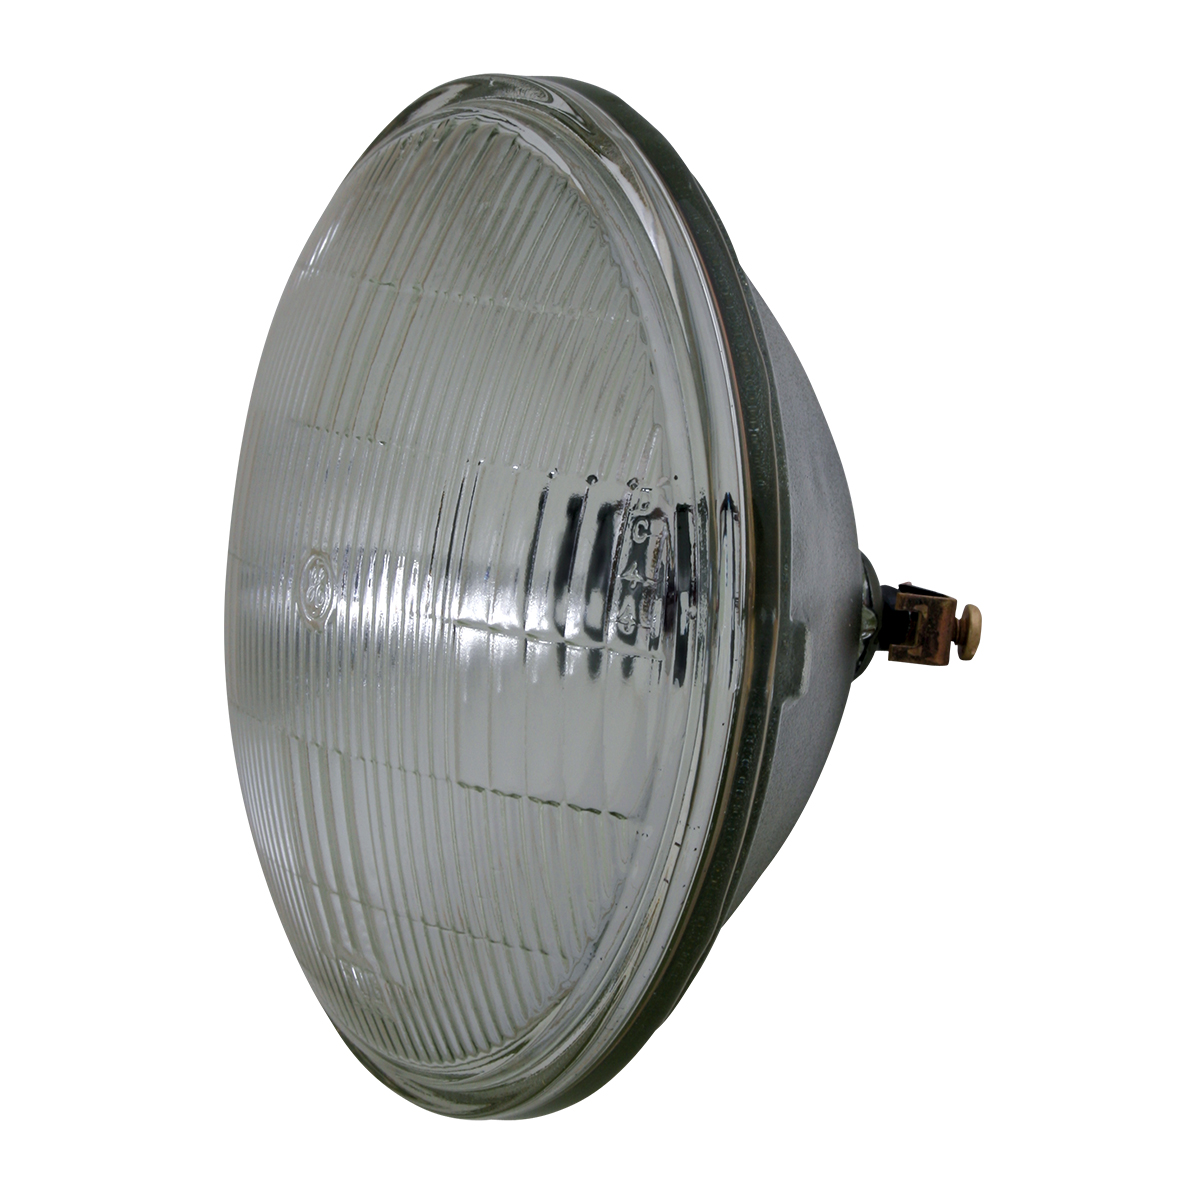 #80410 Round Sealed Beam #4412 Headlight - Side View